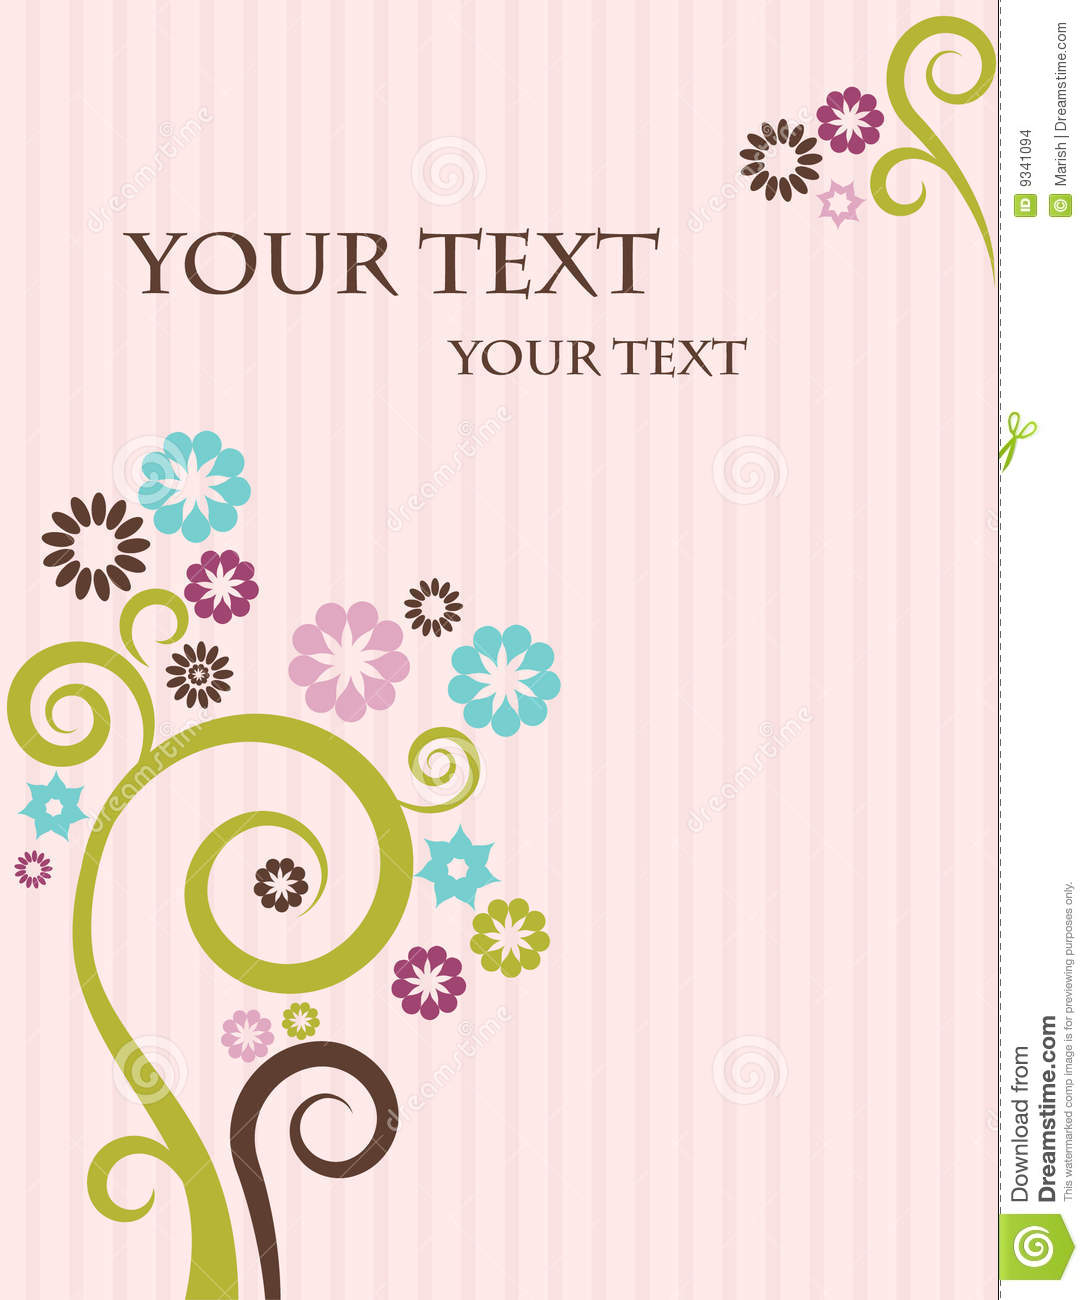 www psprint design templates greeting cards - 28 images - greeting ...